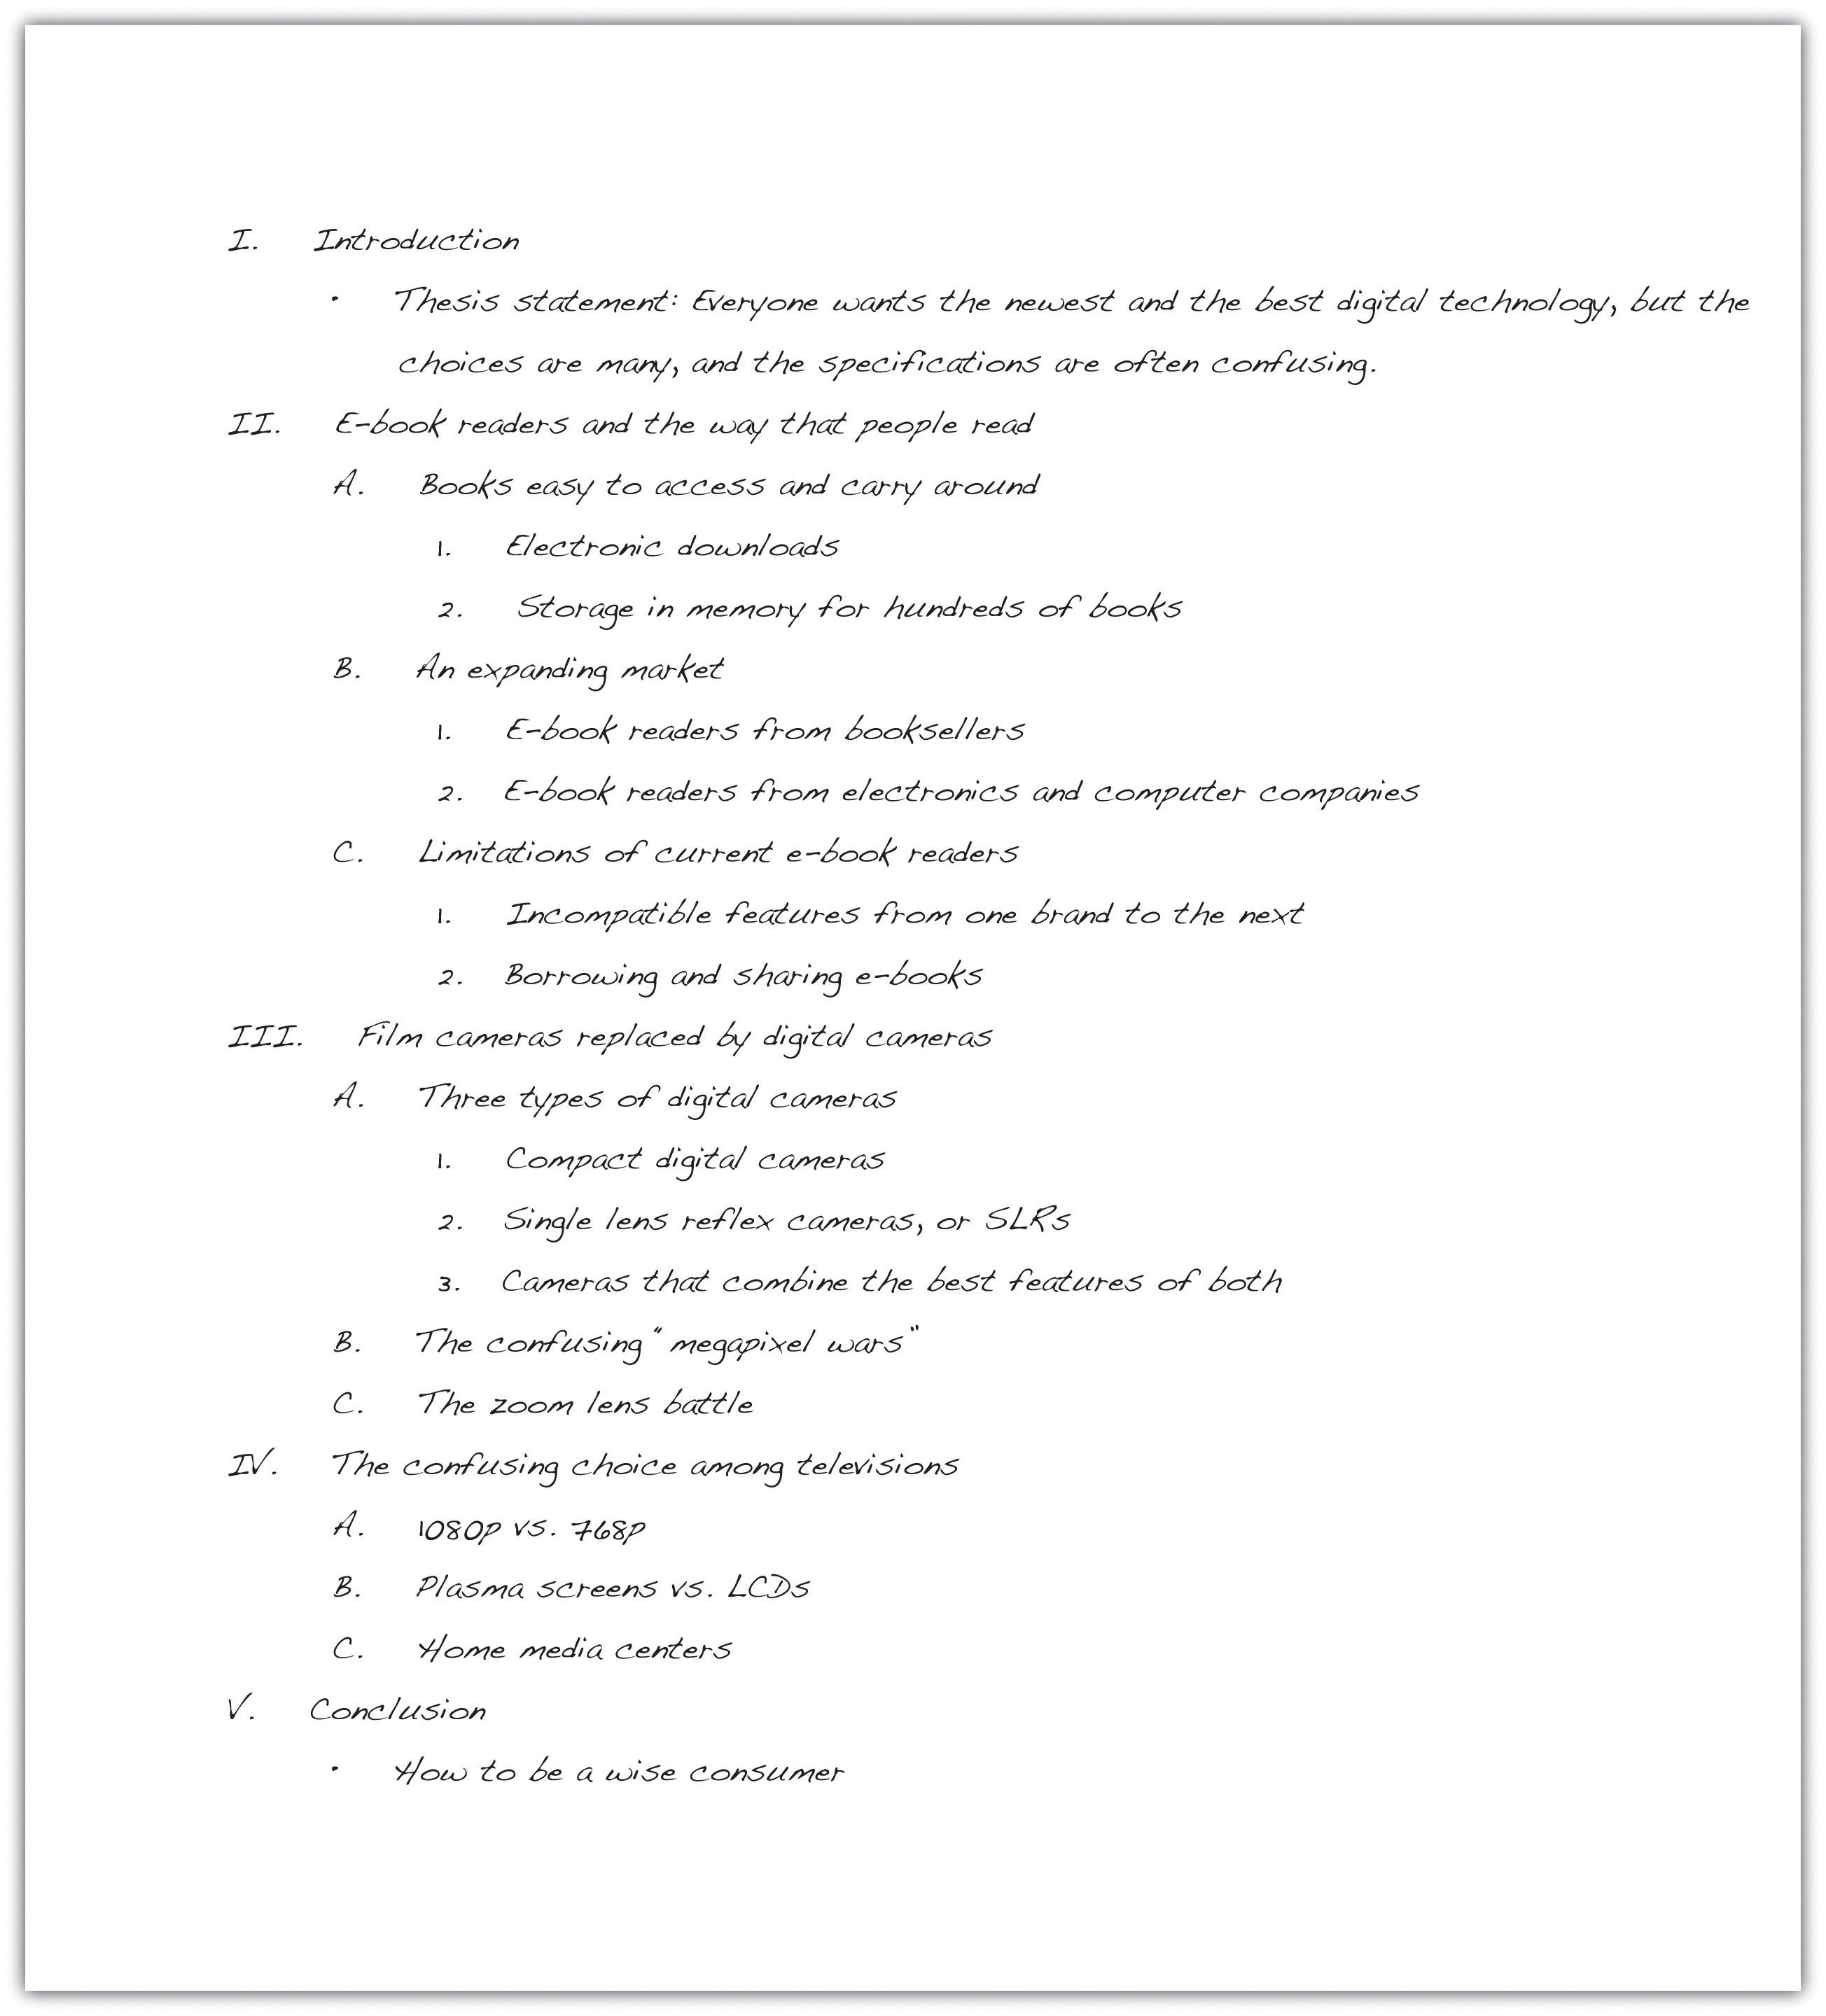 The Existence Of God Essay Outline Of Student Paper Showing Roman Numeral Formatting Followed By A  B C Pay For Essays also Ernest Hemingway Essay Writing For Success Outlining  English  Exposition And  Essay On Company